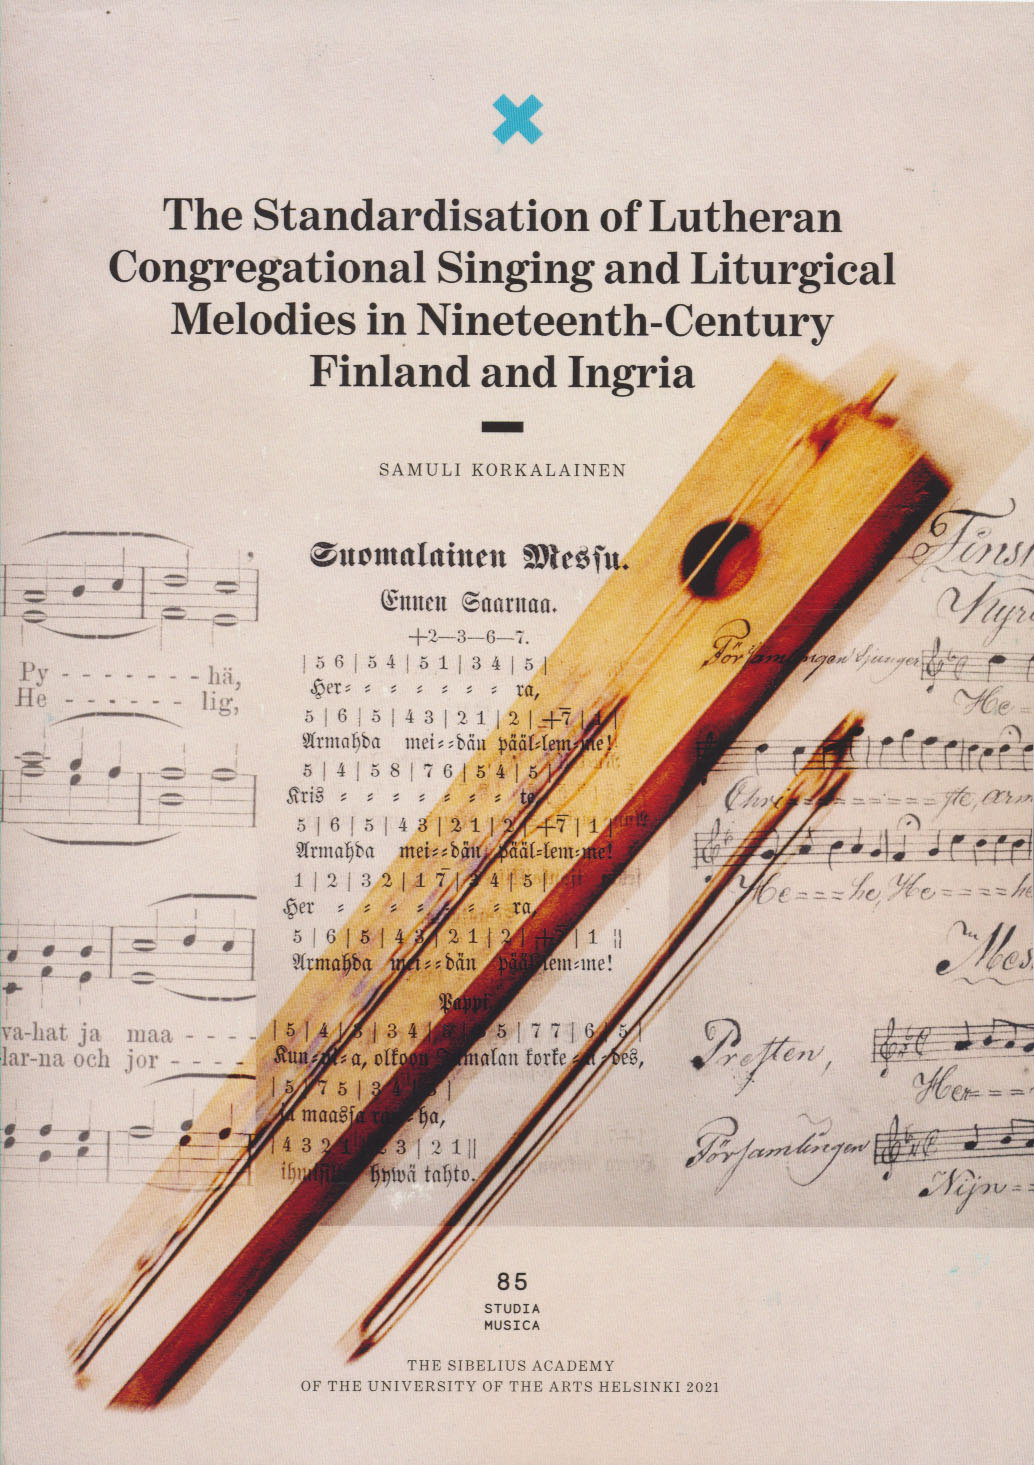 The Standardisation of Lutheran Congregational Singing and Liturgical Melodies in Nineteenth-Century Finland and Ingria